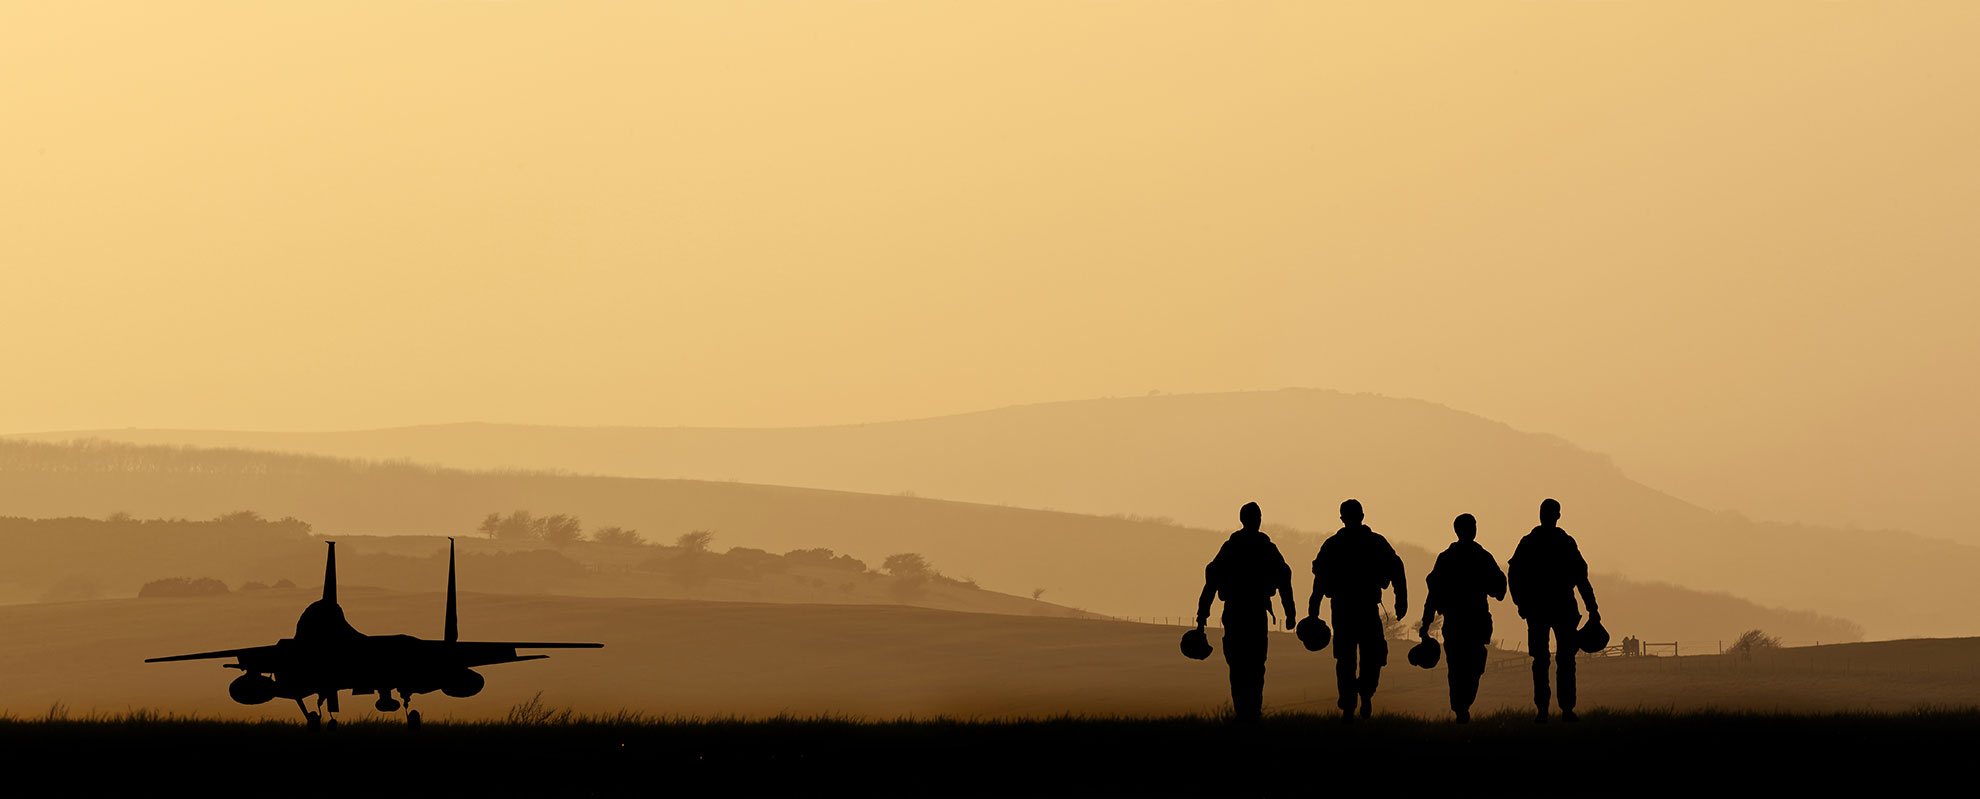 Silhouette: Four pilots stroll past an aircraft.